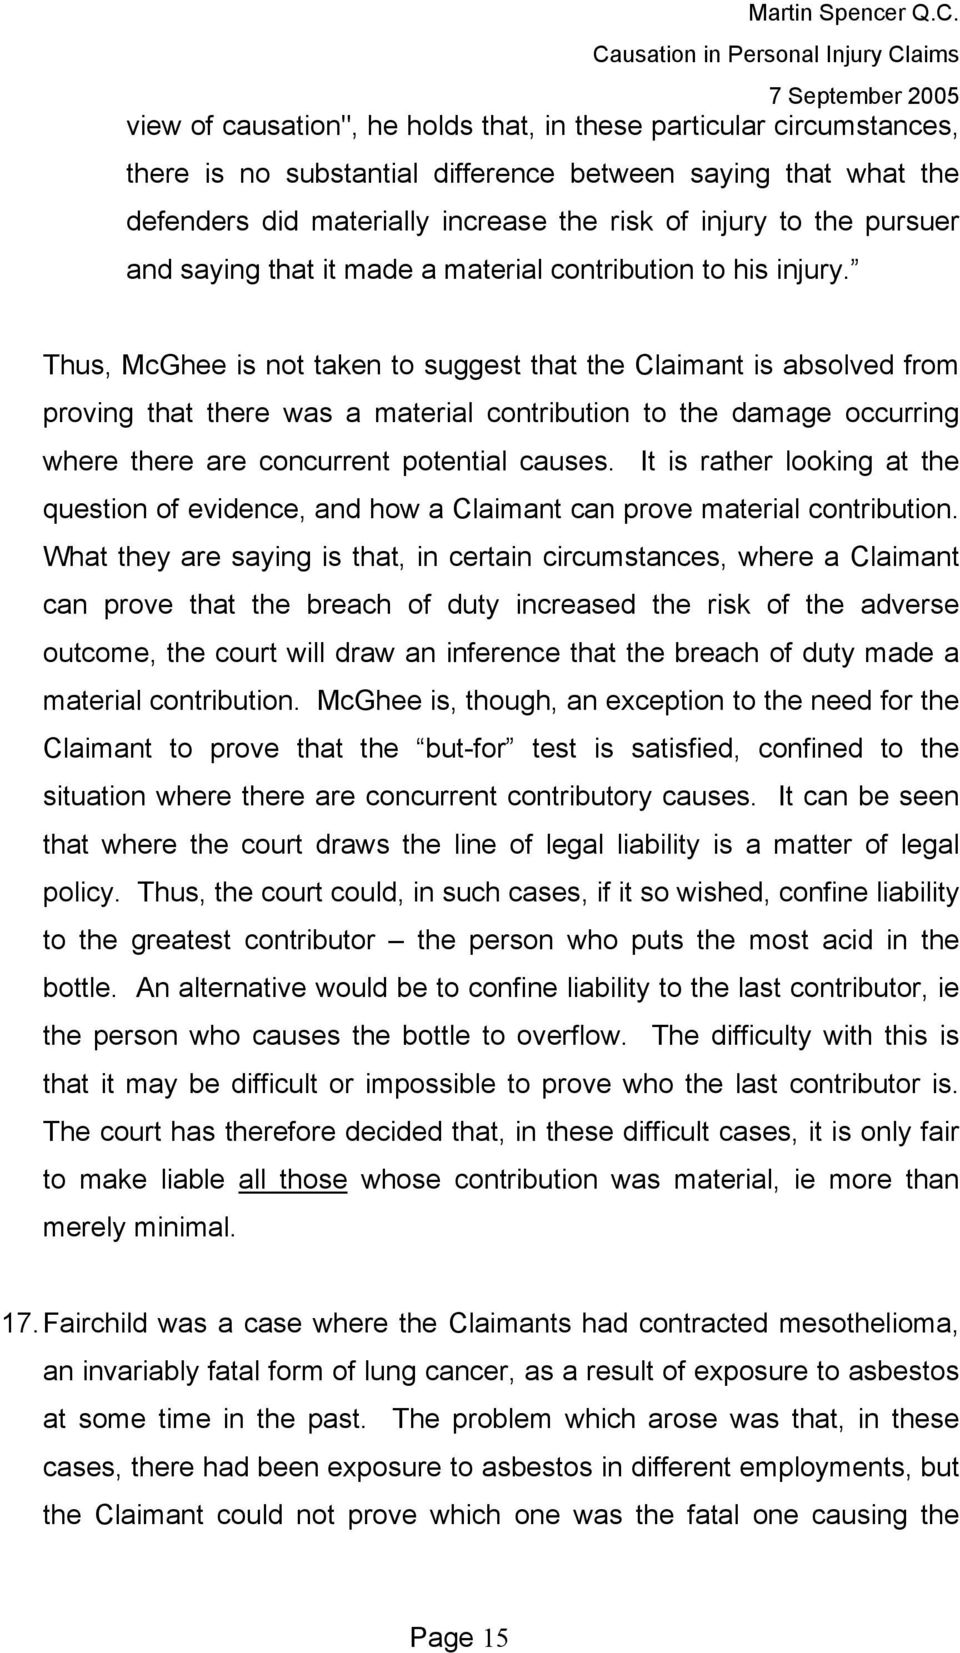 Thus, McGhee is not taken to suggest that the Claimant is absolved from proving that there was a material contribution to the damage occurring where there are concurrent potential causes.